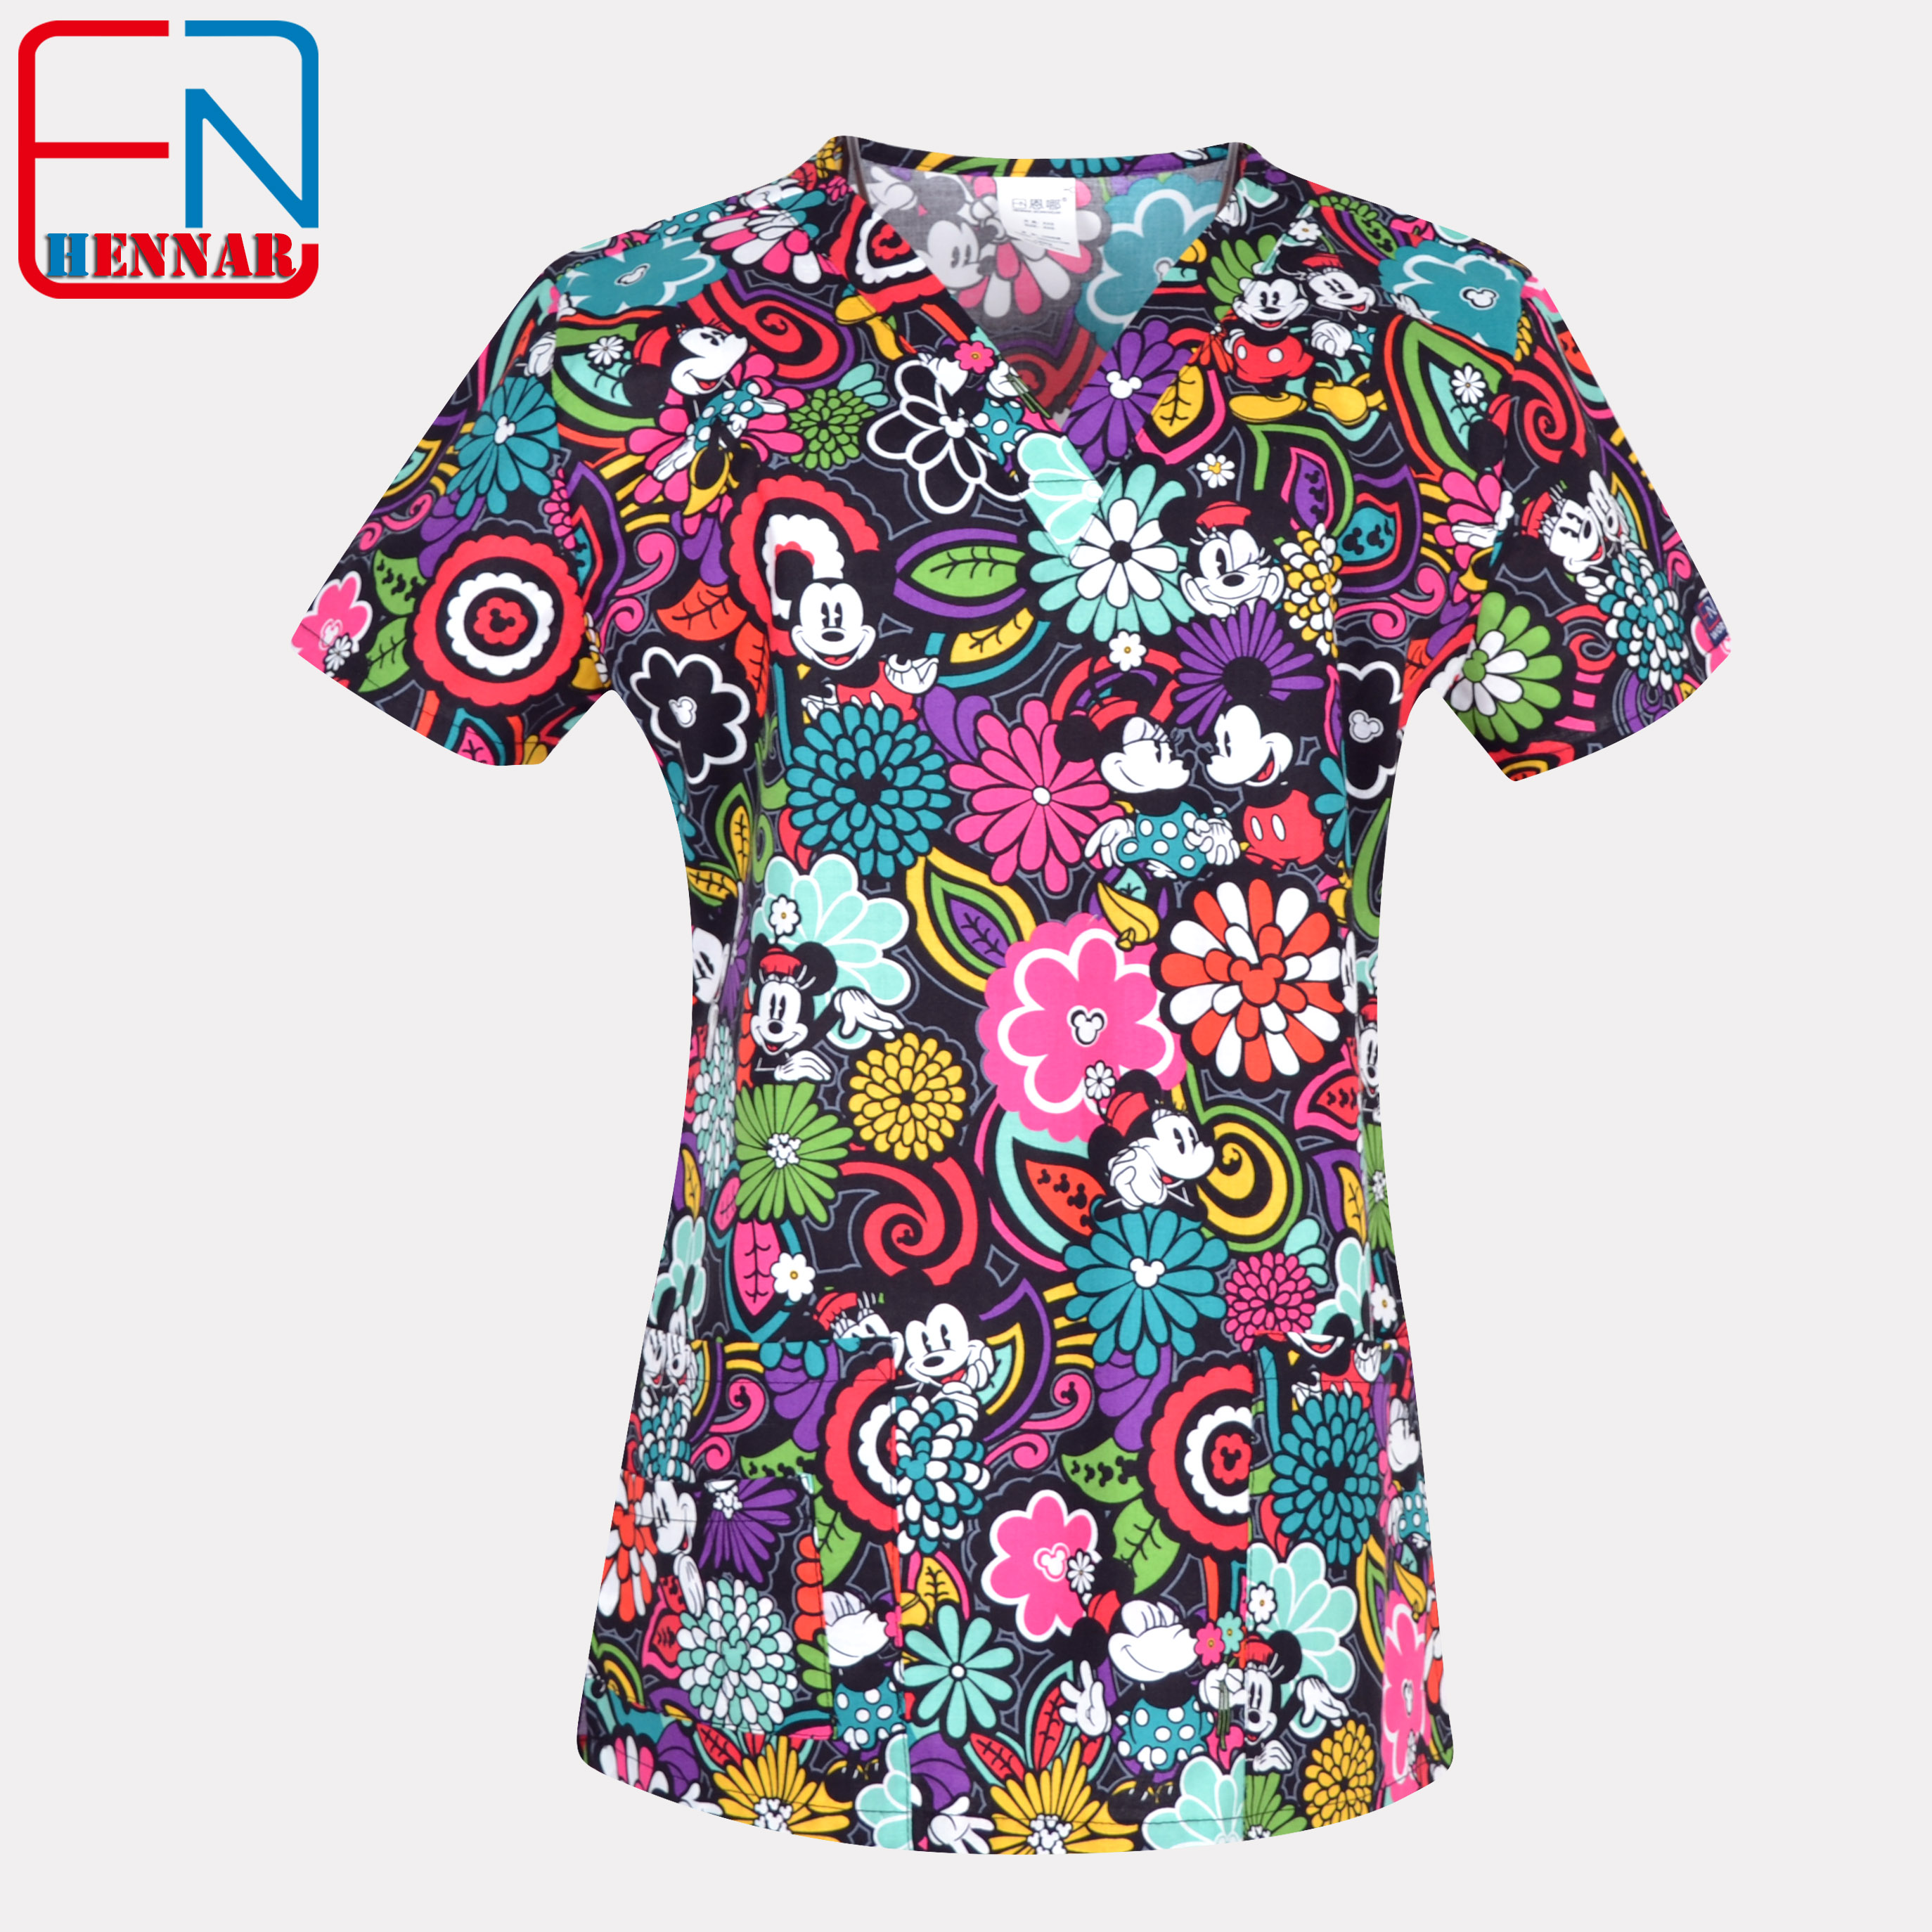 1908 NEW Hennar Women Scrub Top With V-Neck 100% Cotton Print Surgical Medical Uniforms Hospital Nurse Scrub Tops For Women